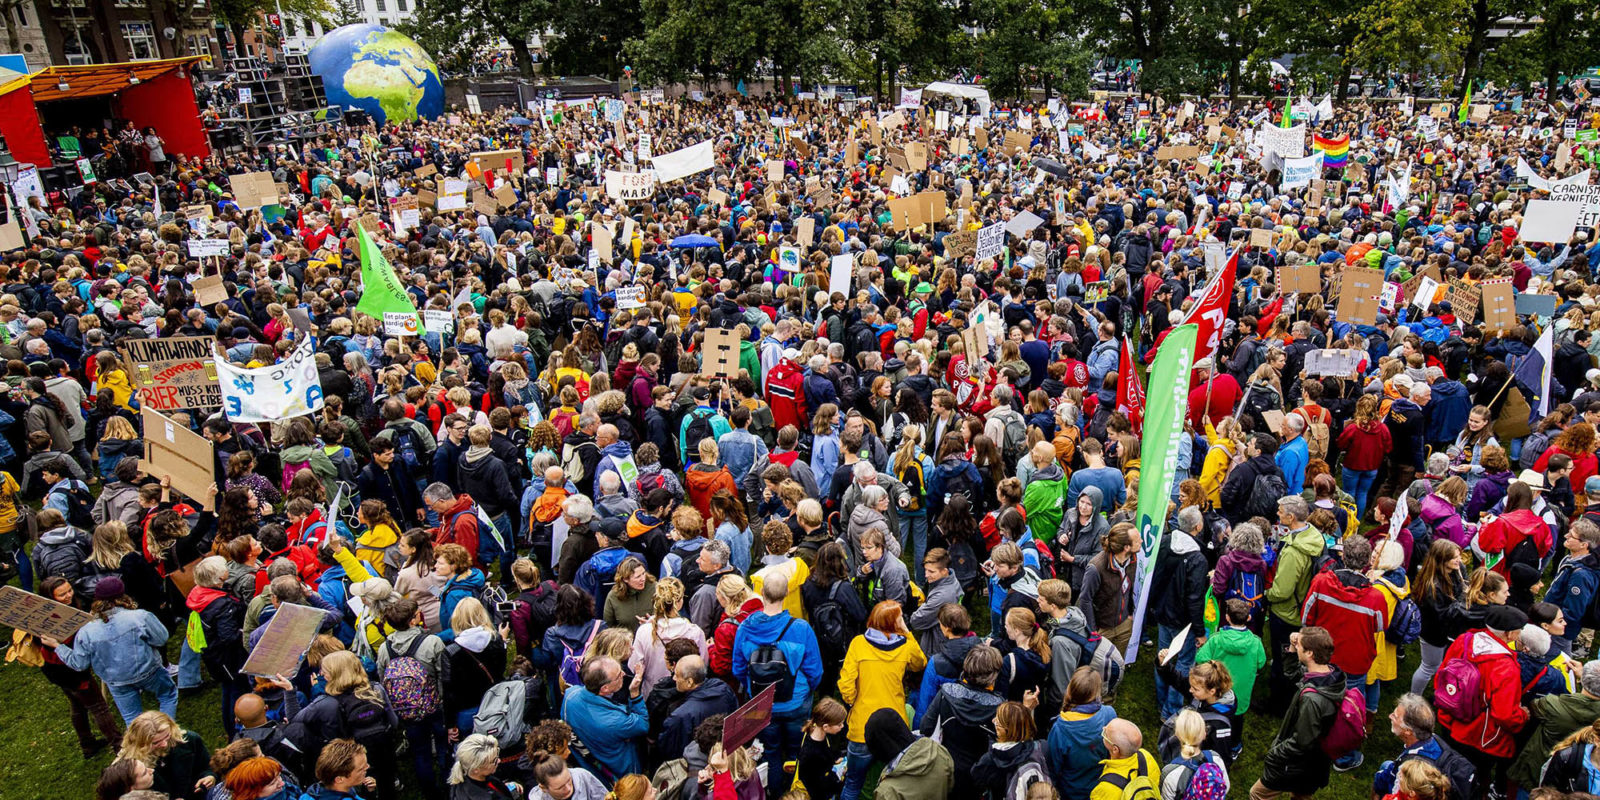 A Climate Change: An unstoppable movement takes hold